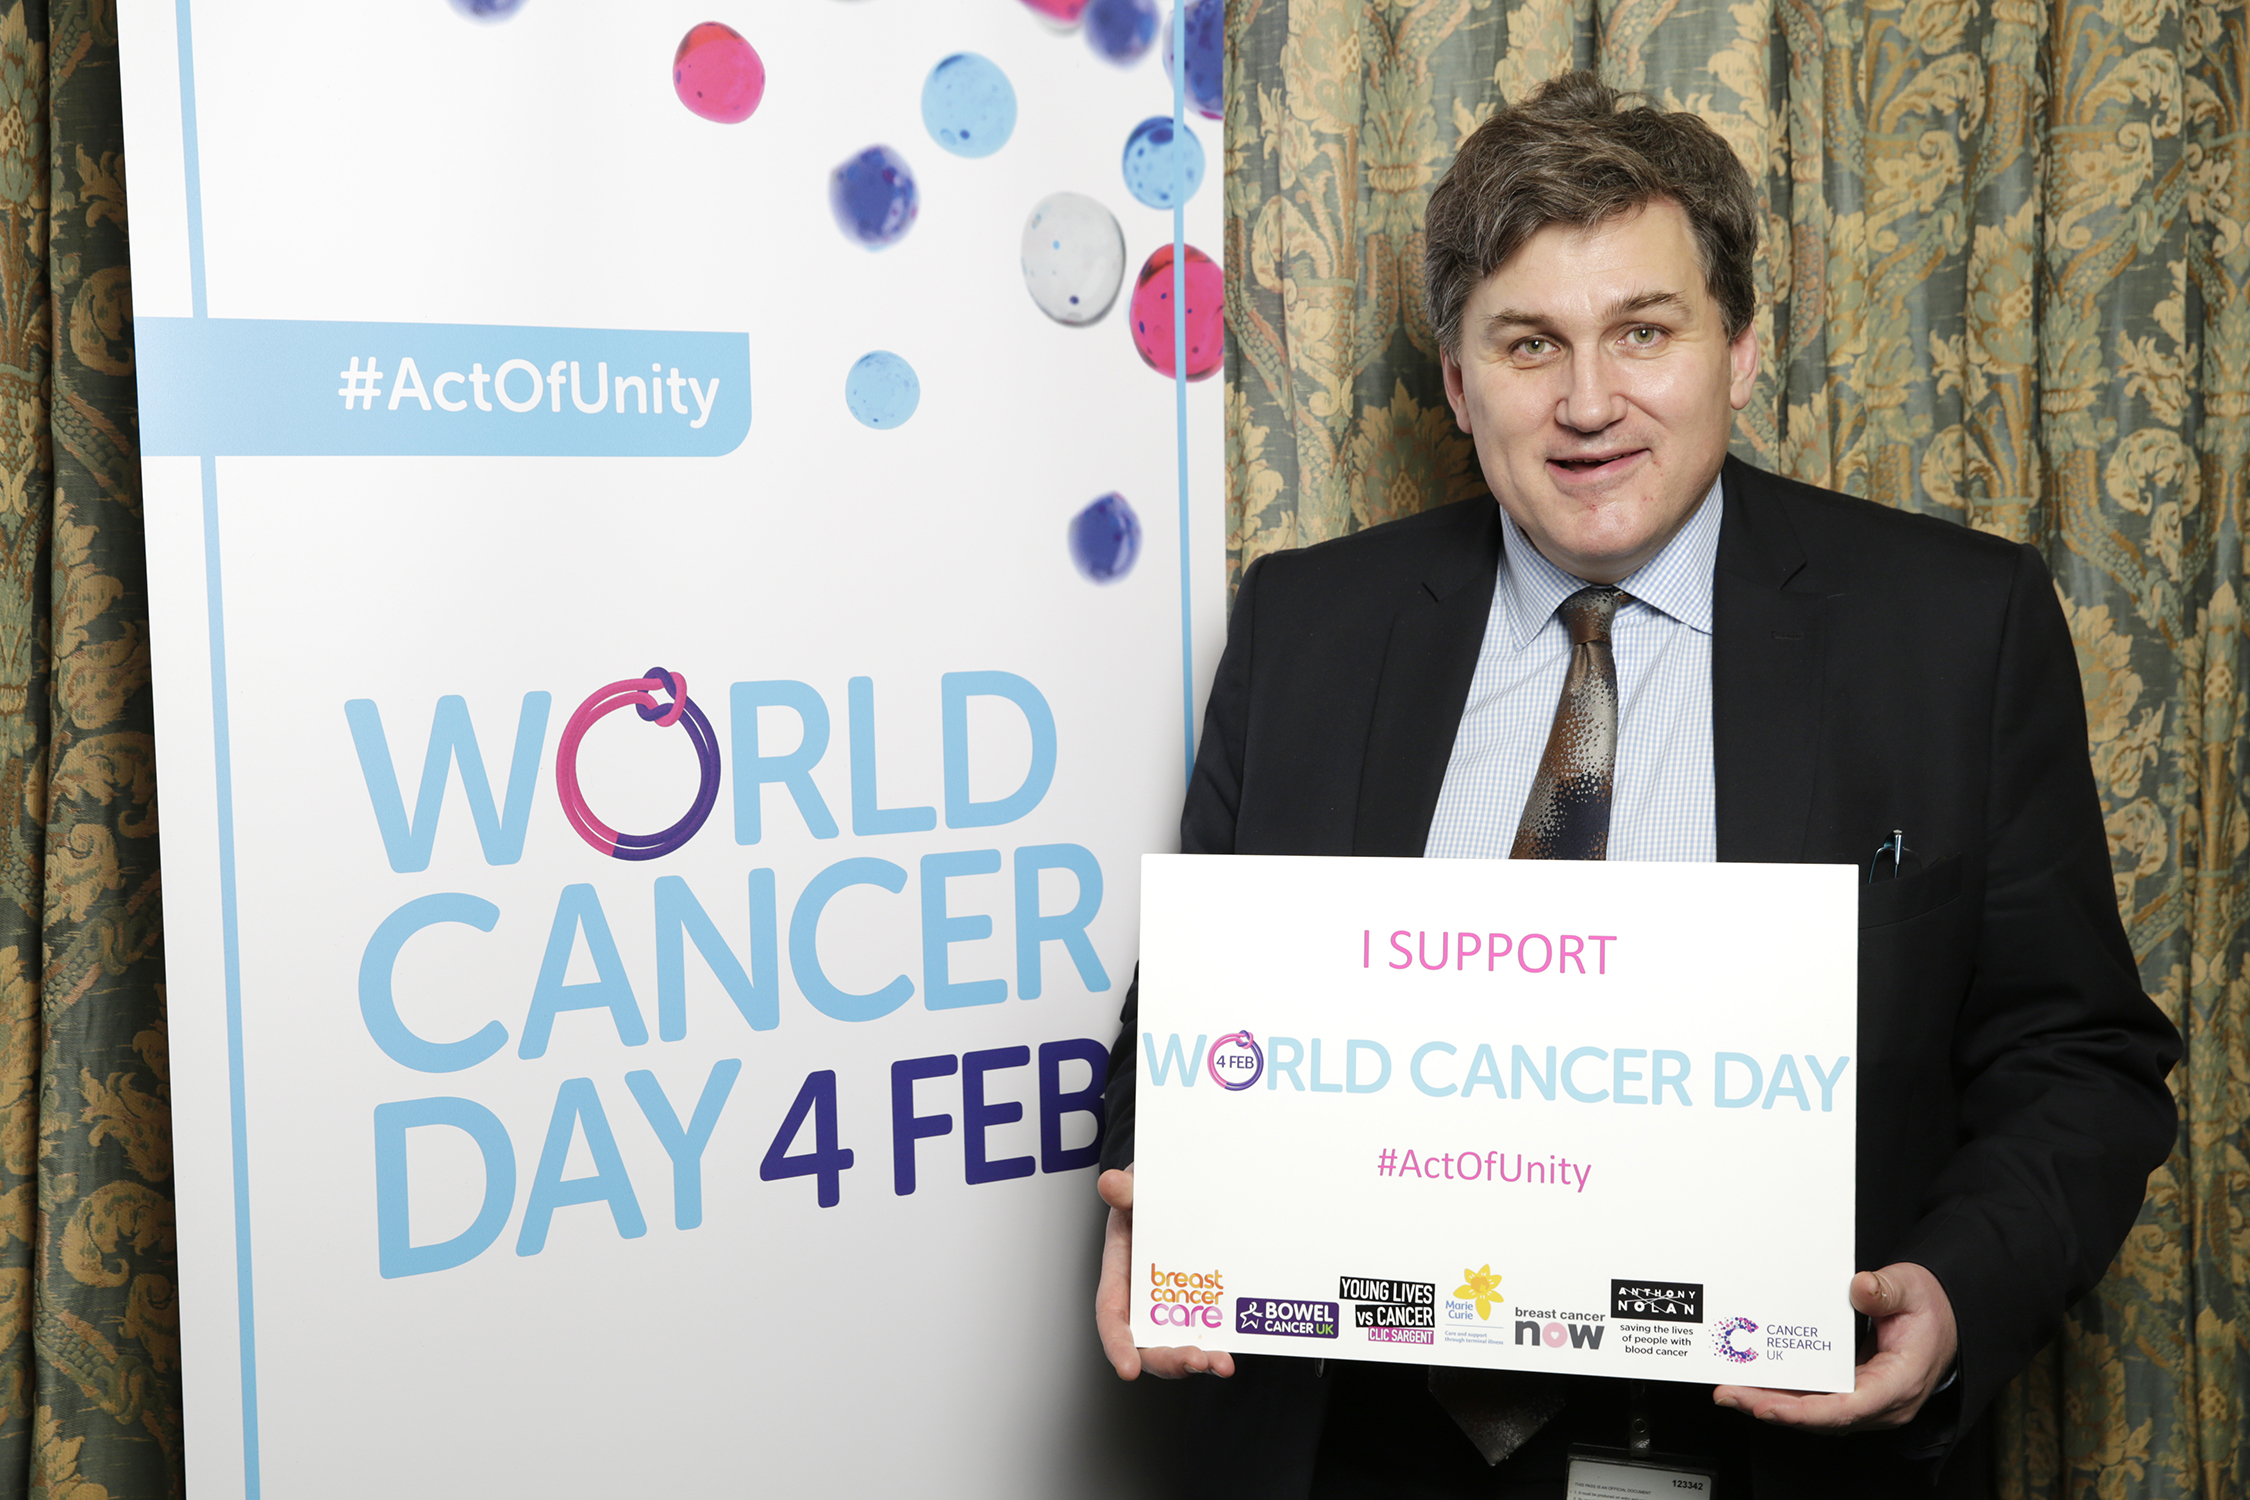 010217-WorldCancerDay-MP-130-small